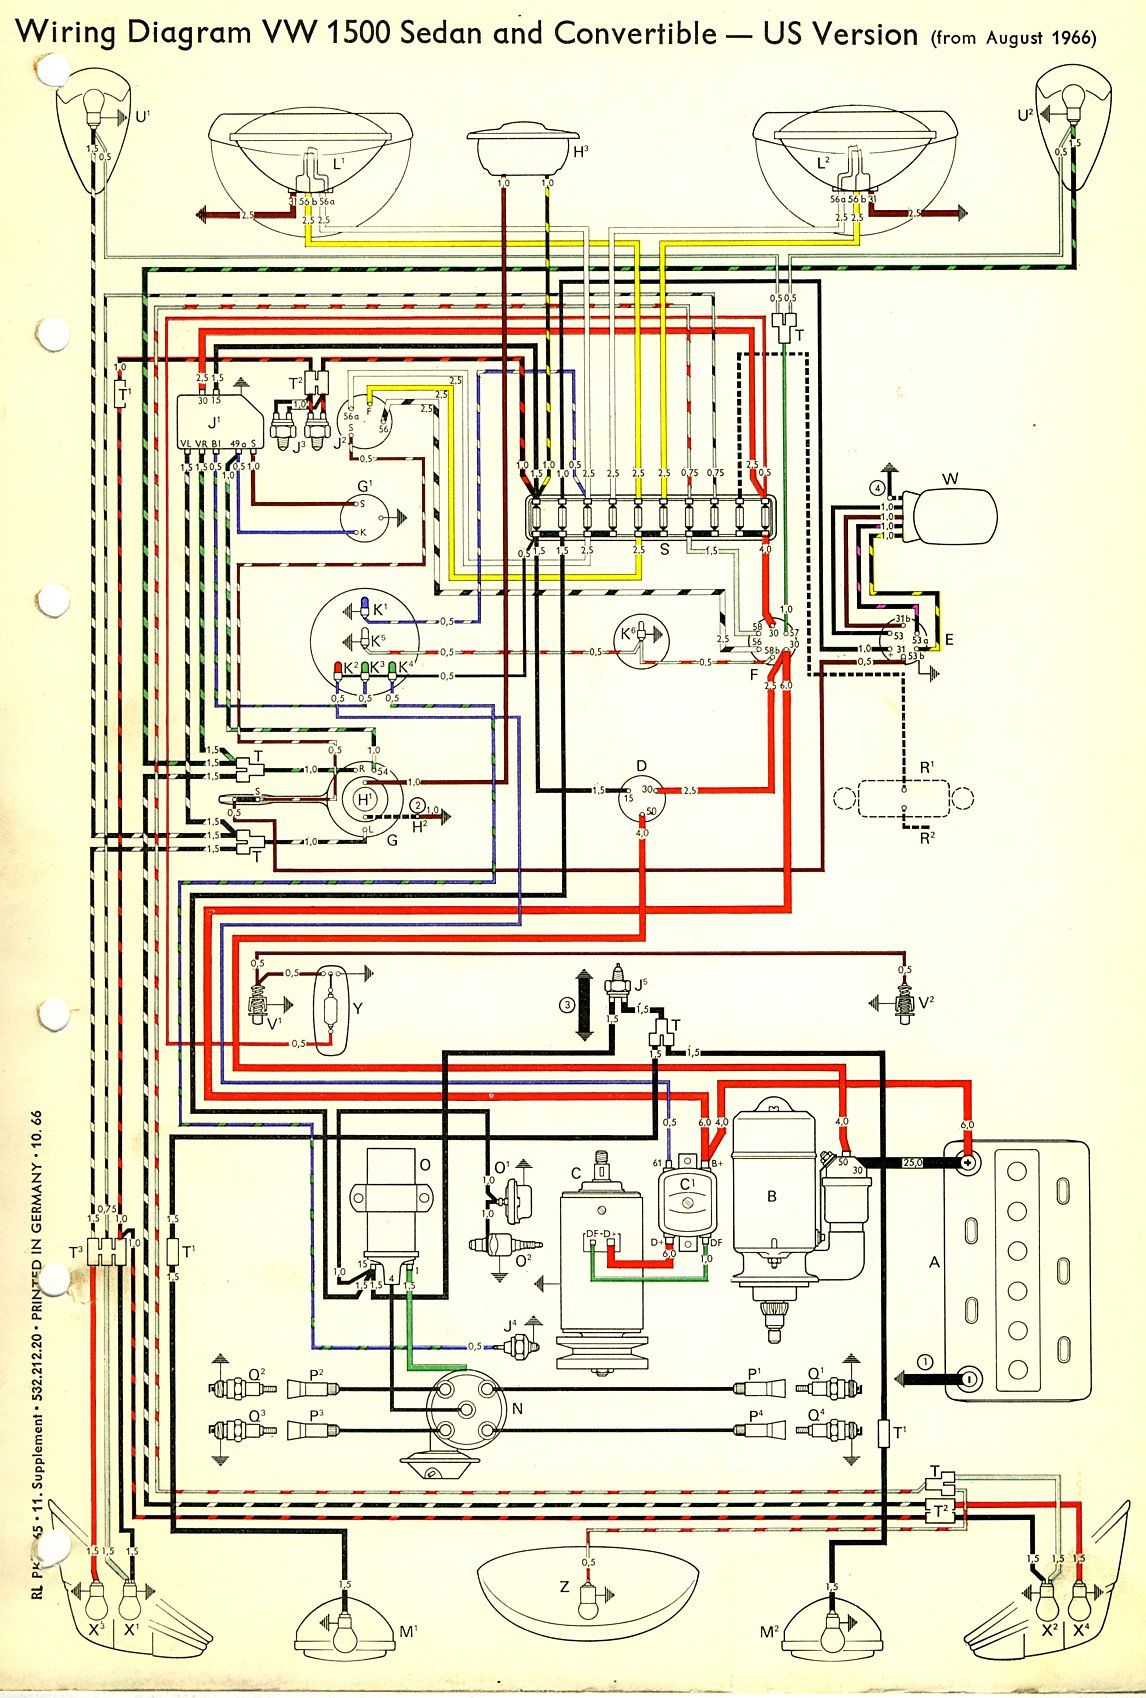 1adf990c0efb617c789fdd21338448b0 1967 beetle wiring diagram (usa) thegoldenbug com best 1967 vw vw bug wiring diagram at webbmarketing.co